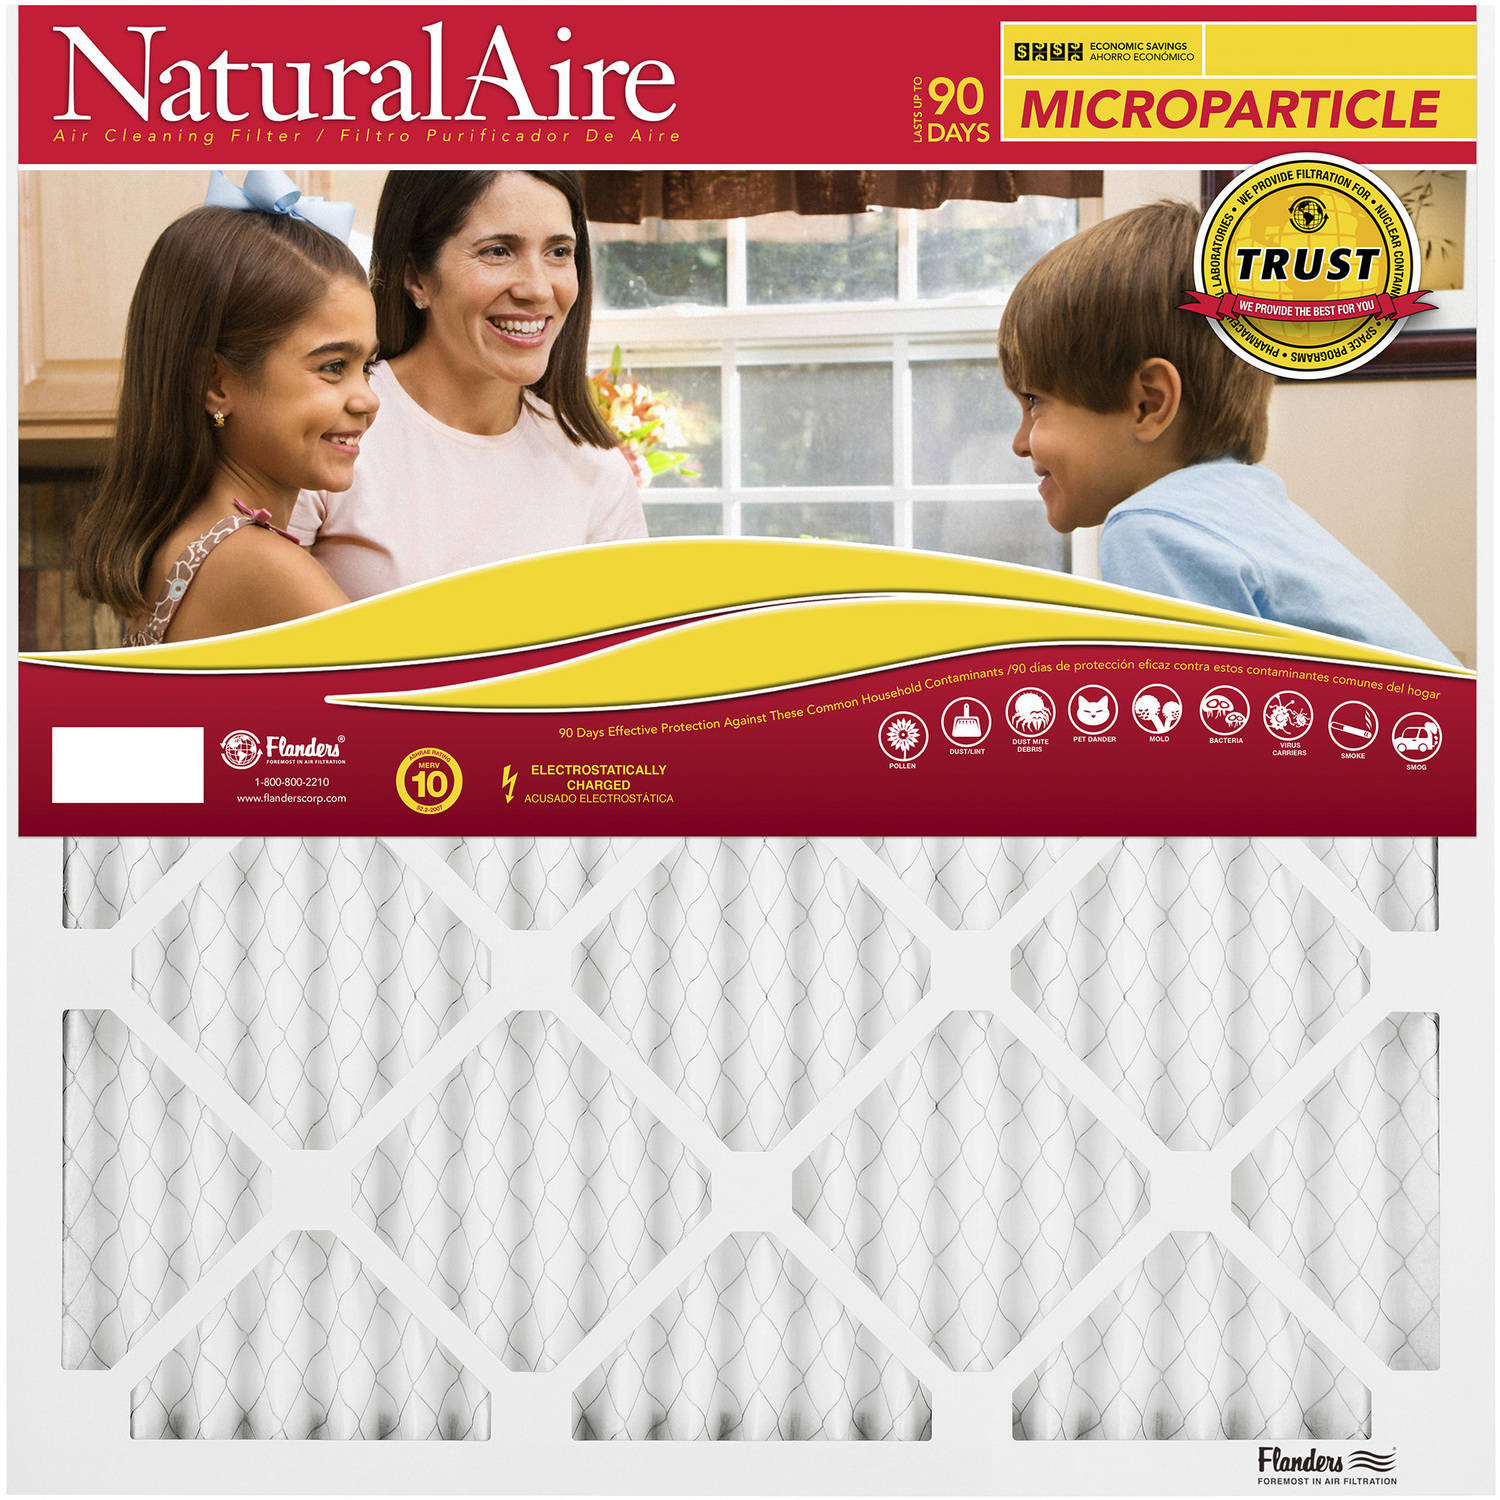 "NaturalAire Mircoparticle Air Filter, MERV 10, 10"" x 20"" x 1"", 1-Pack"